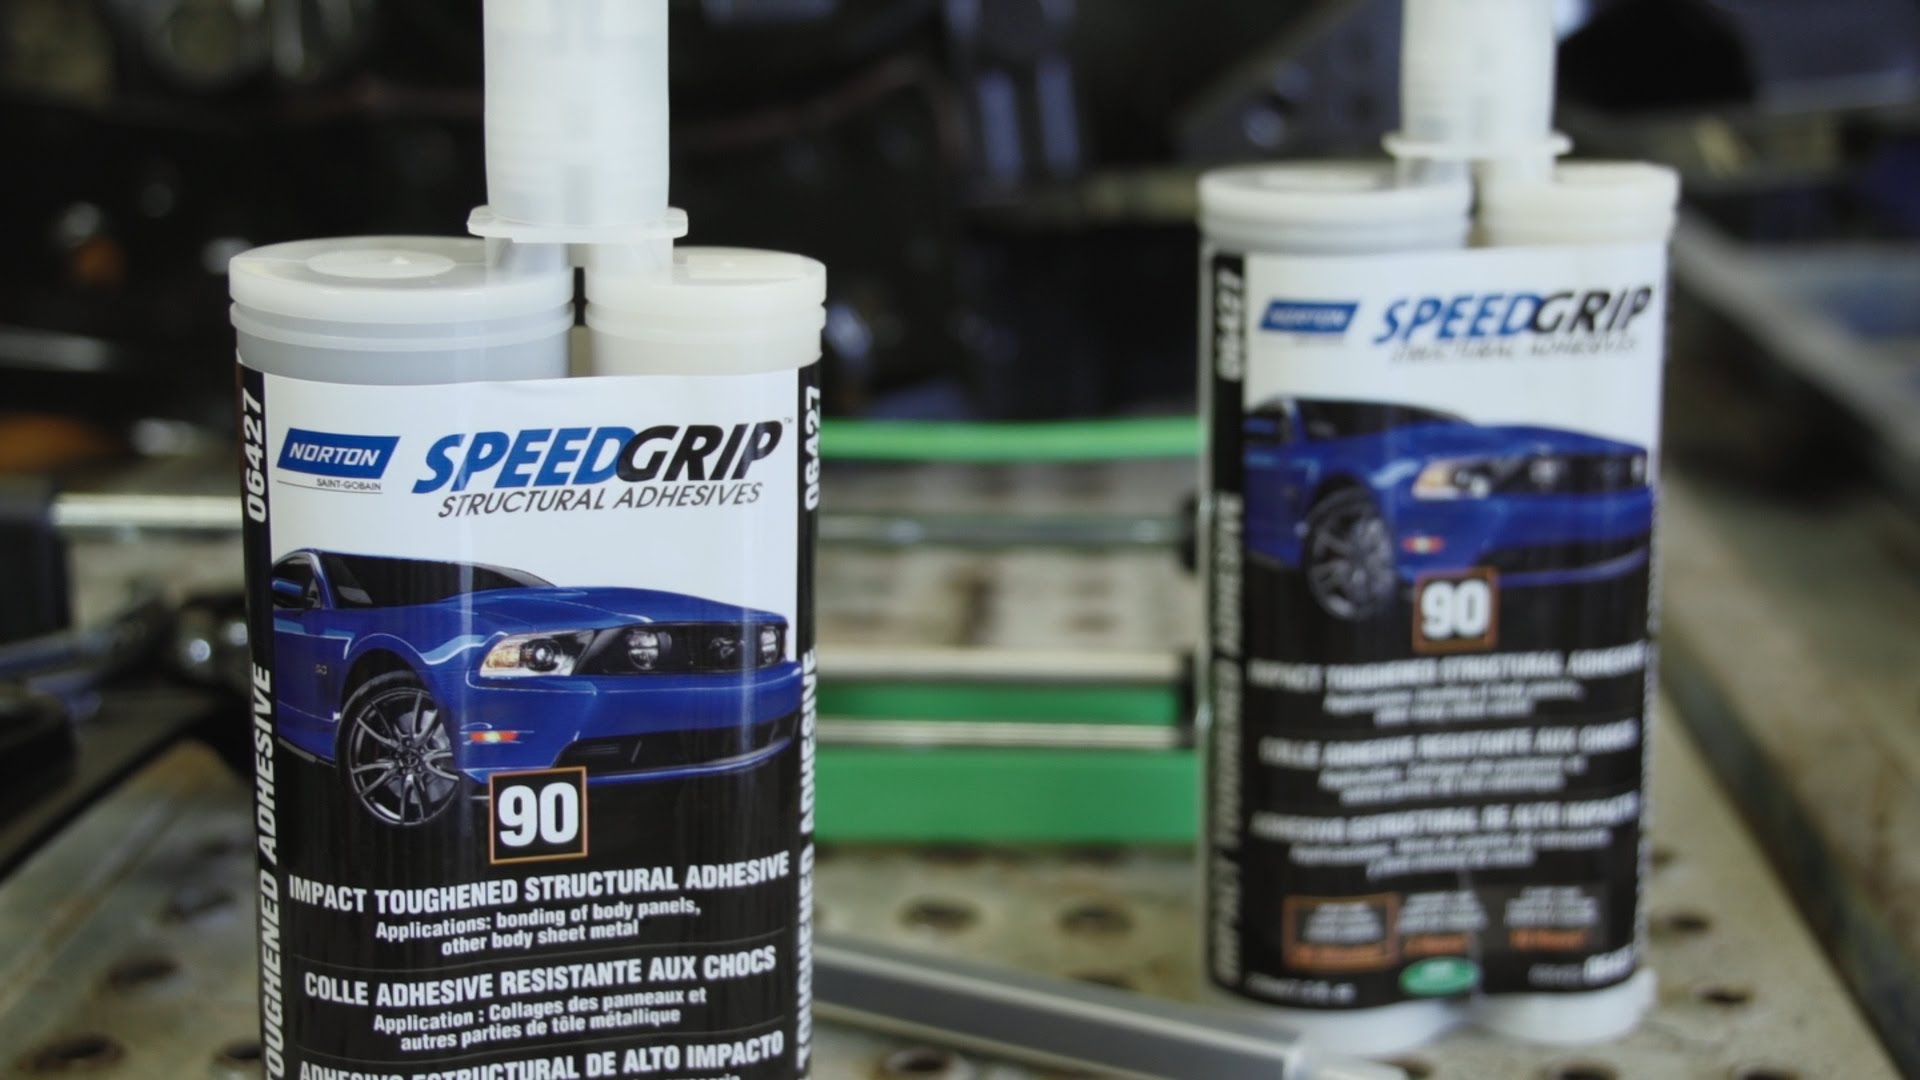 Norton Speedgrip Impact Toughened Structural Adhesives